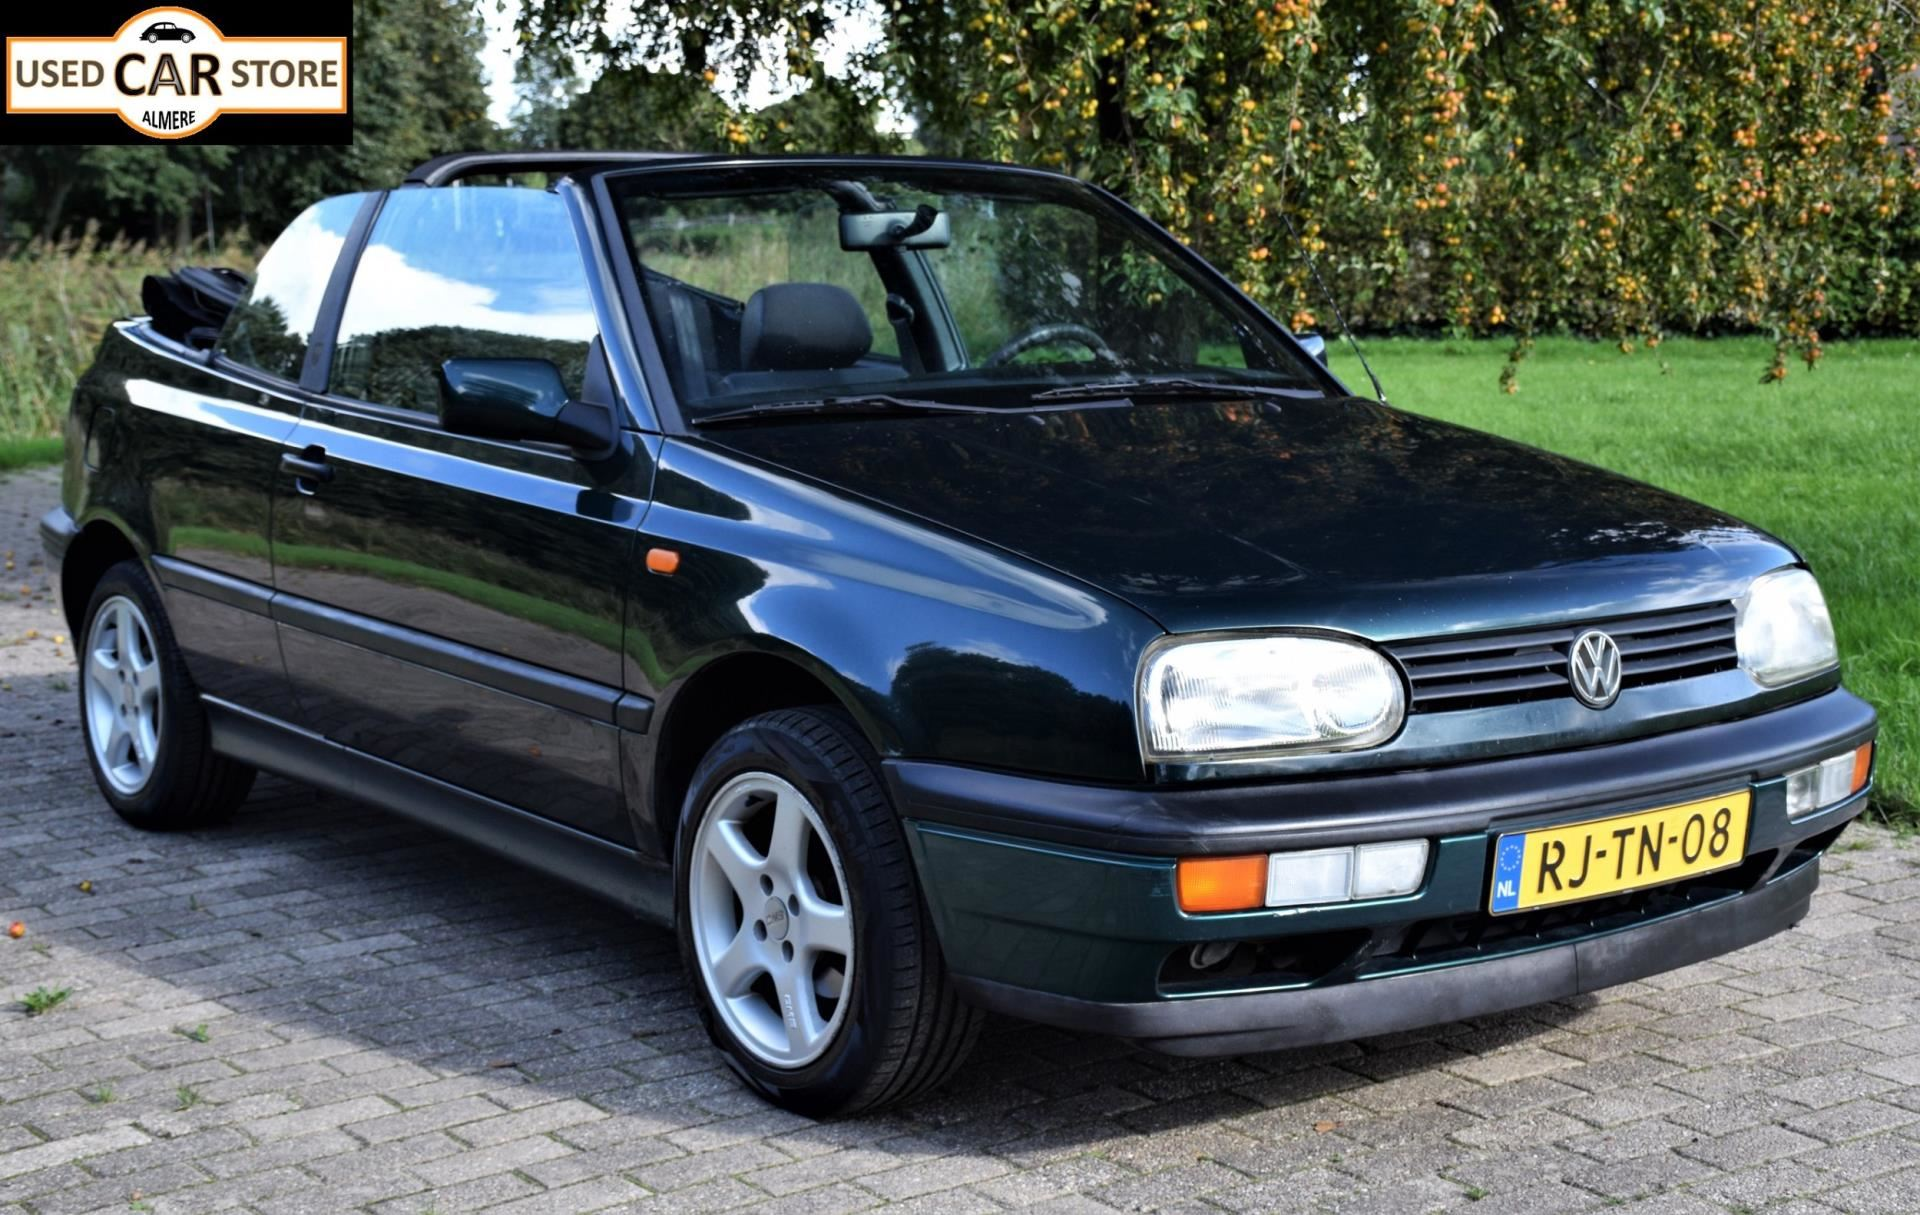 Volkswagen Golf Cabriolet occasion - Used Car Store Almere